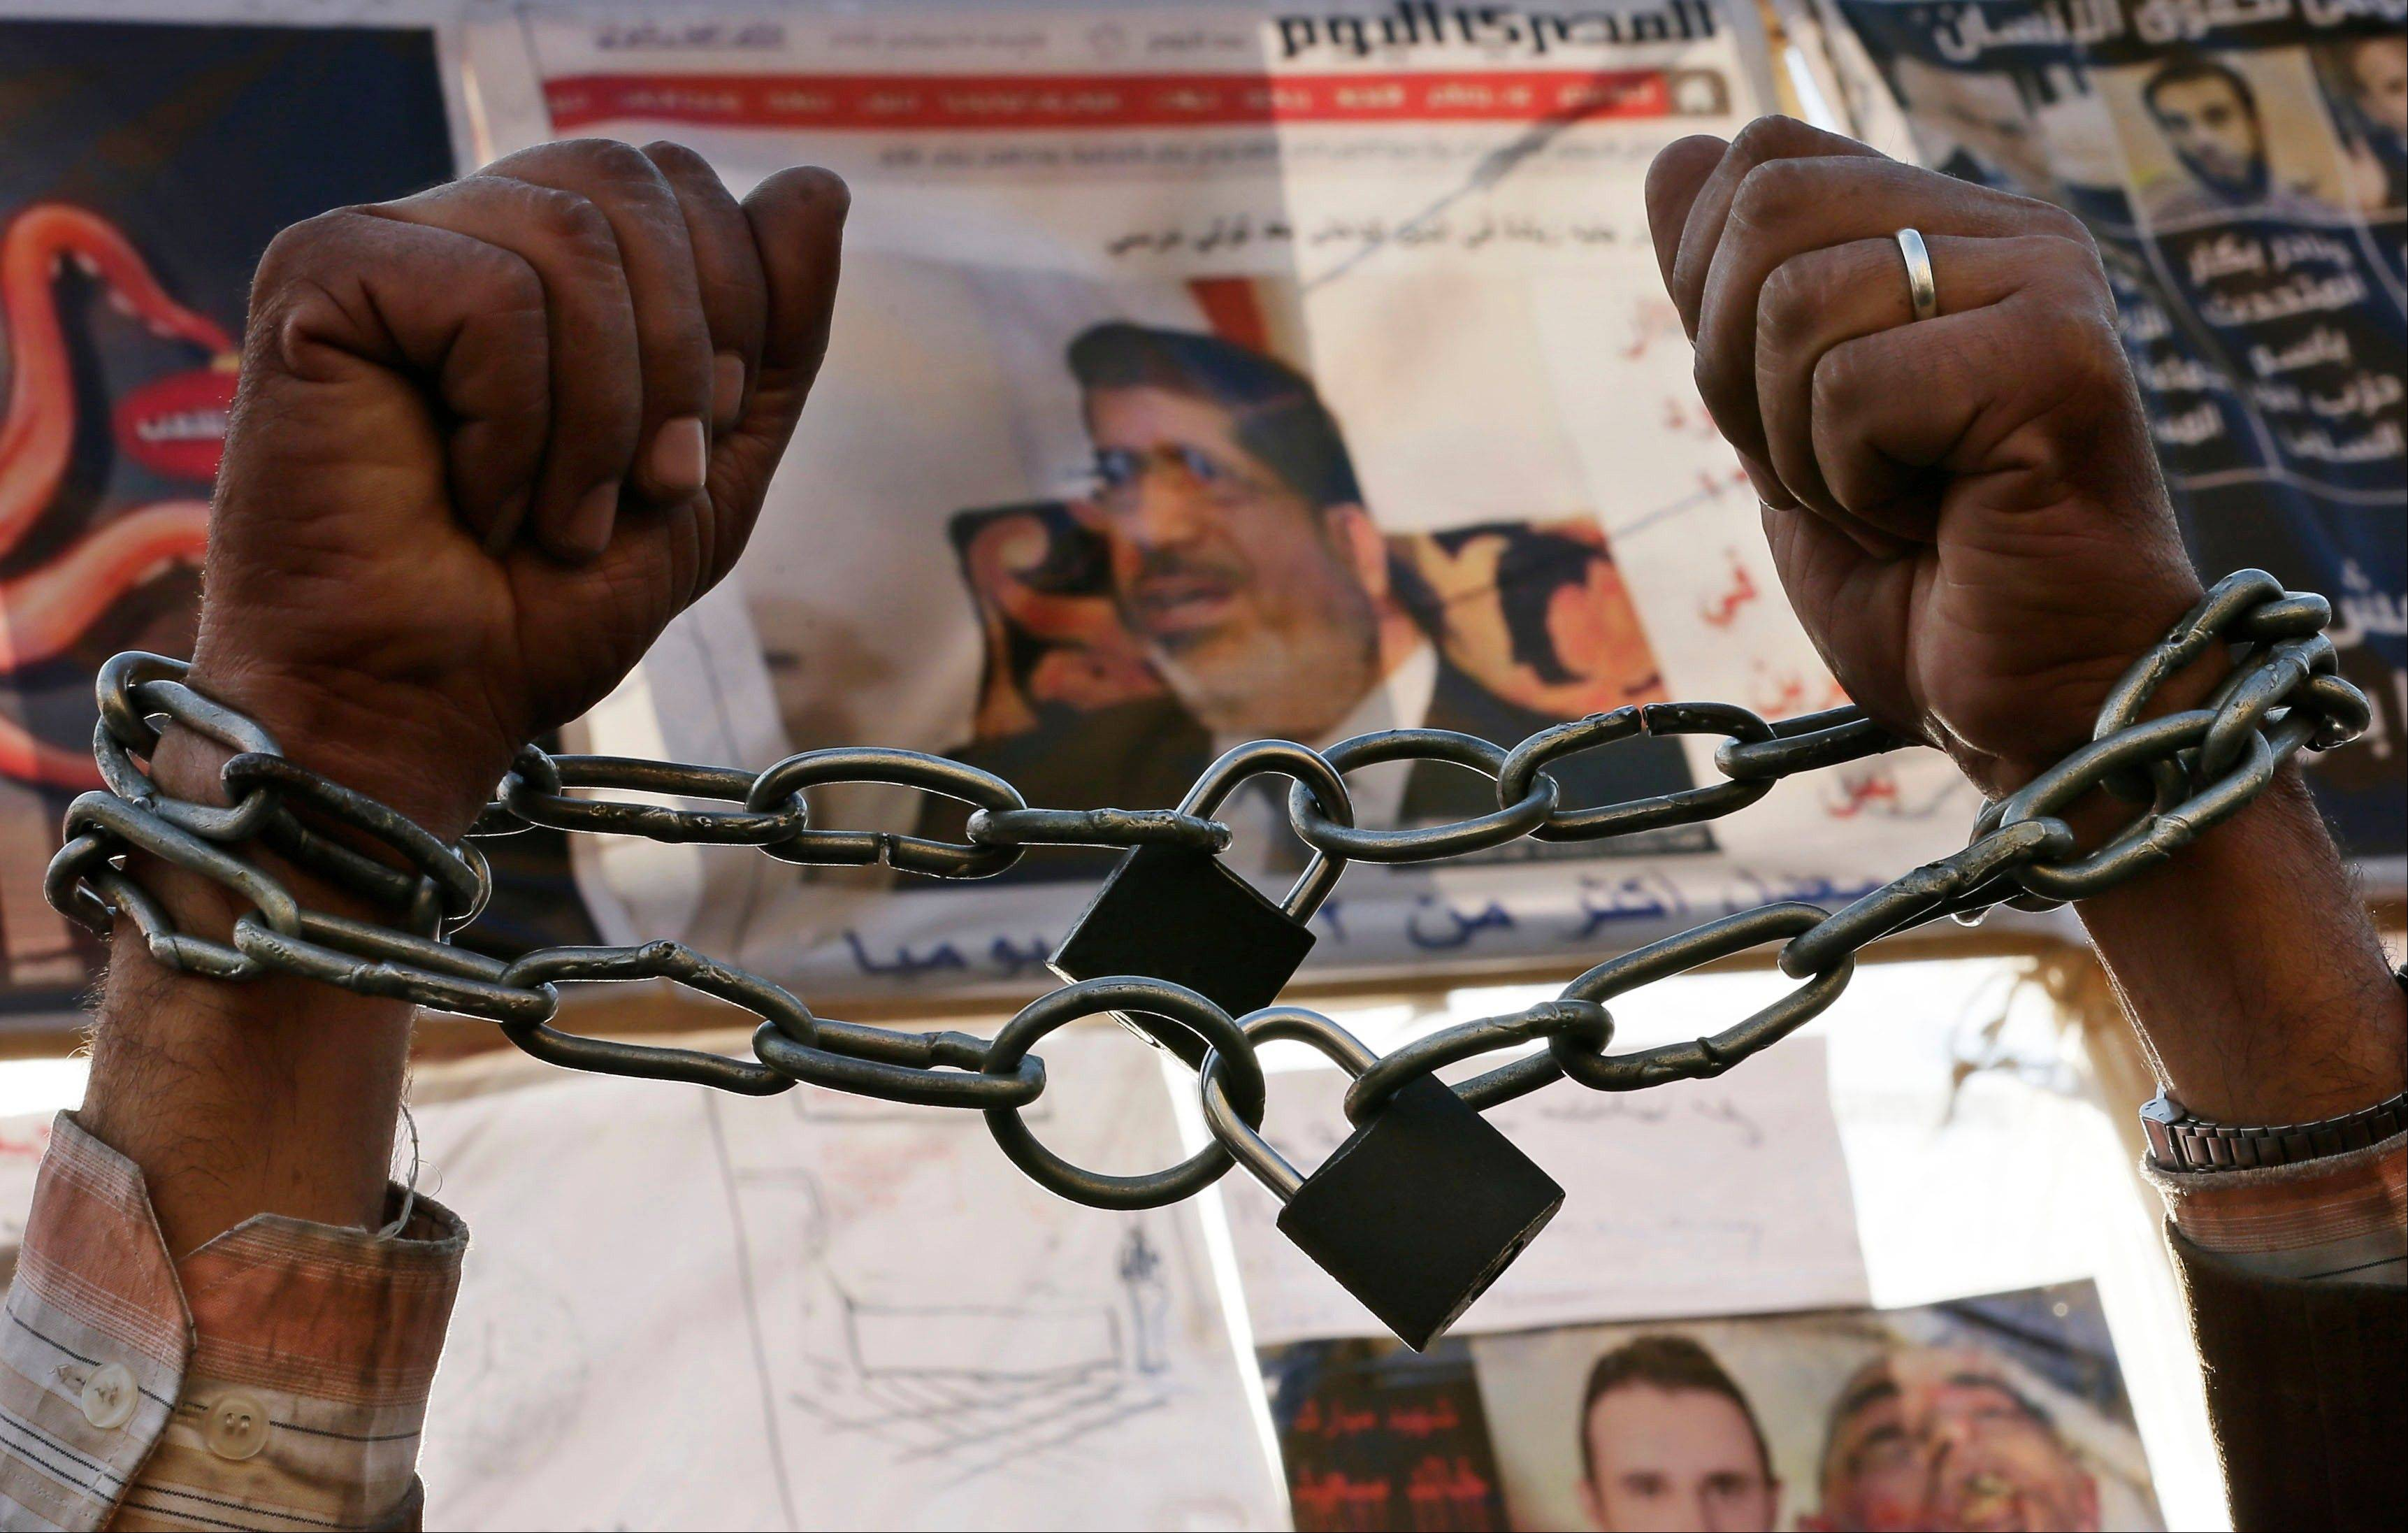 A protester chains his hands during a protest in Tahrir Square in Cairo, Egypt, Monday, Dec. 17, 2012. Egypt's political crisis shows no signs of abating as the opposition to the country's Islamist government levels new challenges against the legitimacy of a referendum on a draft constitution. Morsi also confronts criticism from the judiciary, as prosecutors hold a sit-in to demand removal of a new prosecutor general he appointed.